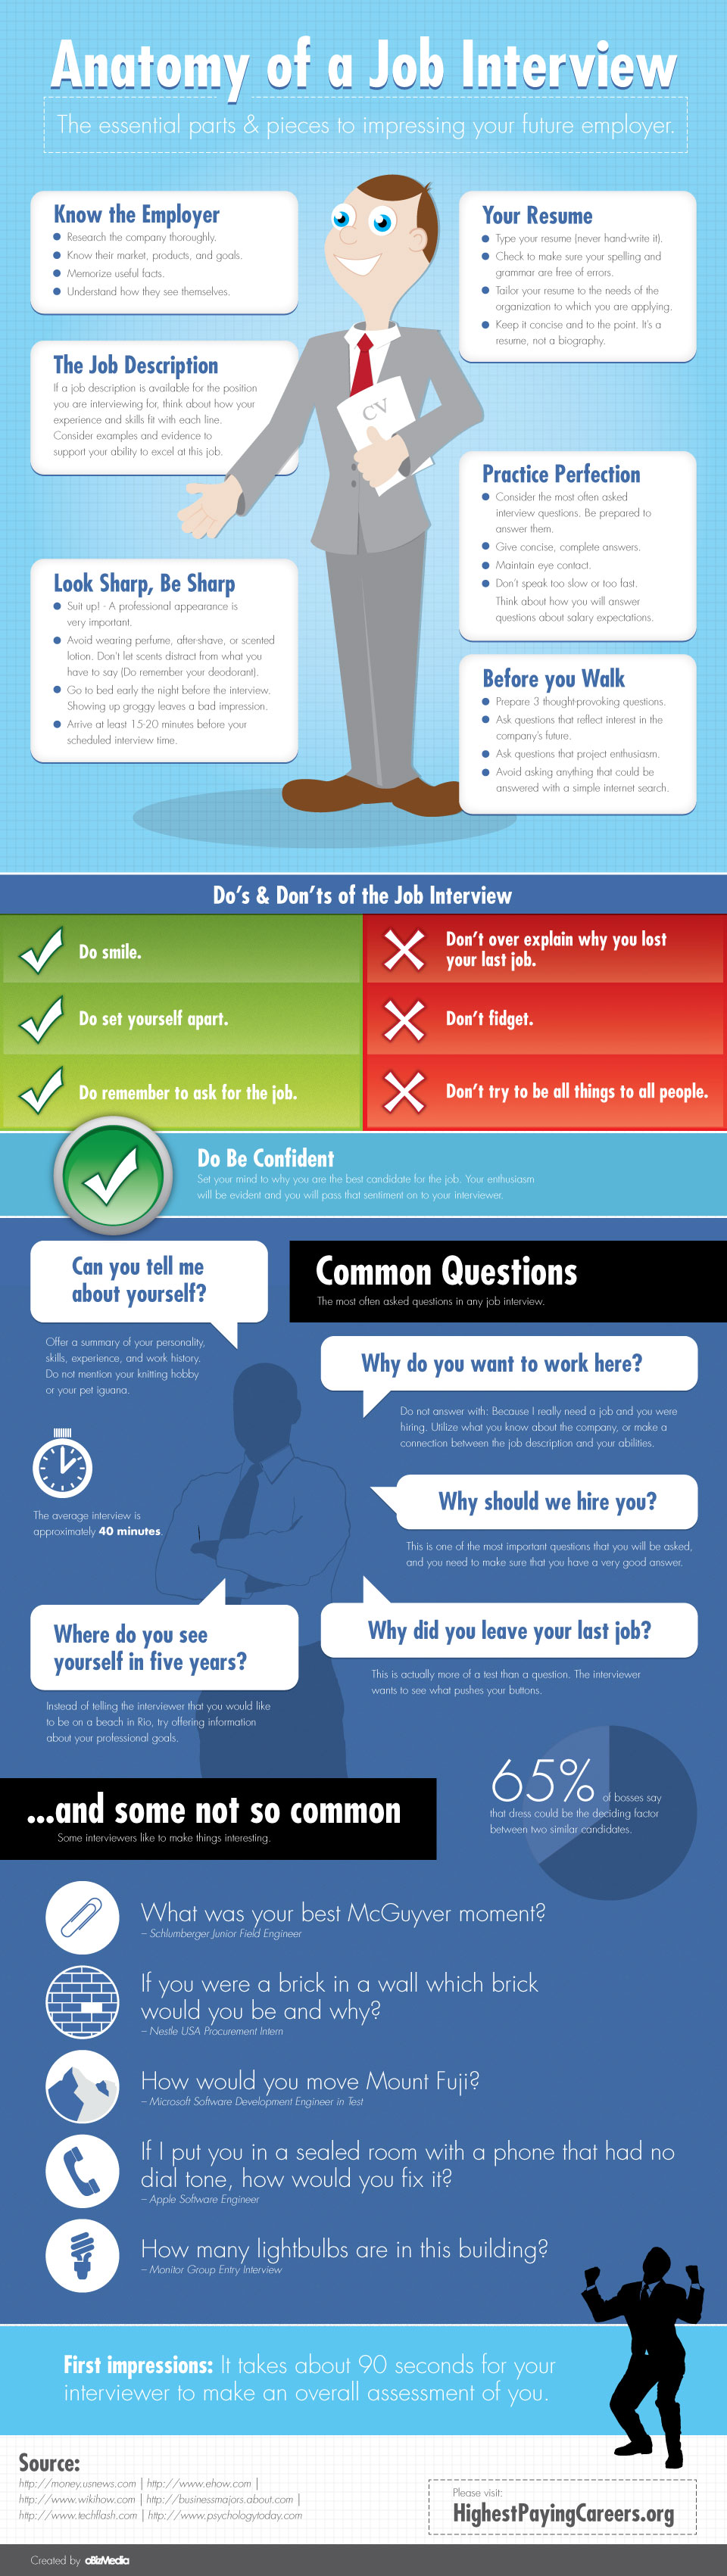 How To Ace A Job Interview [Infographic]